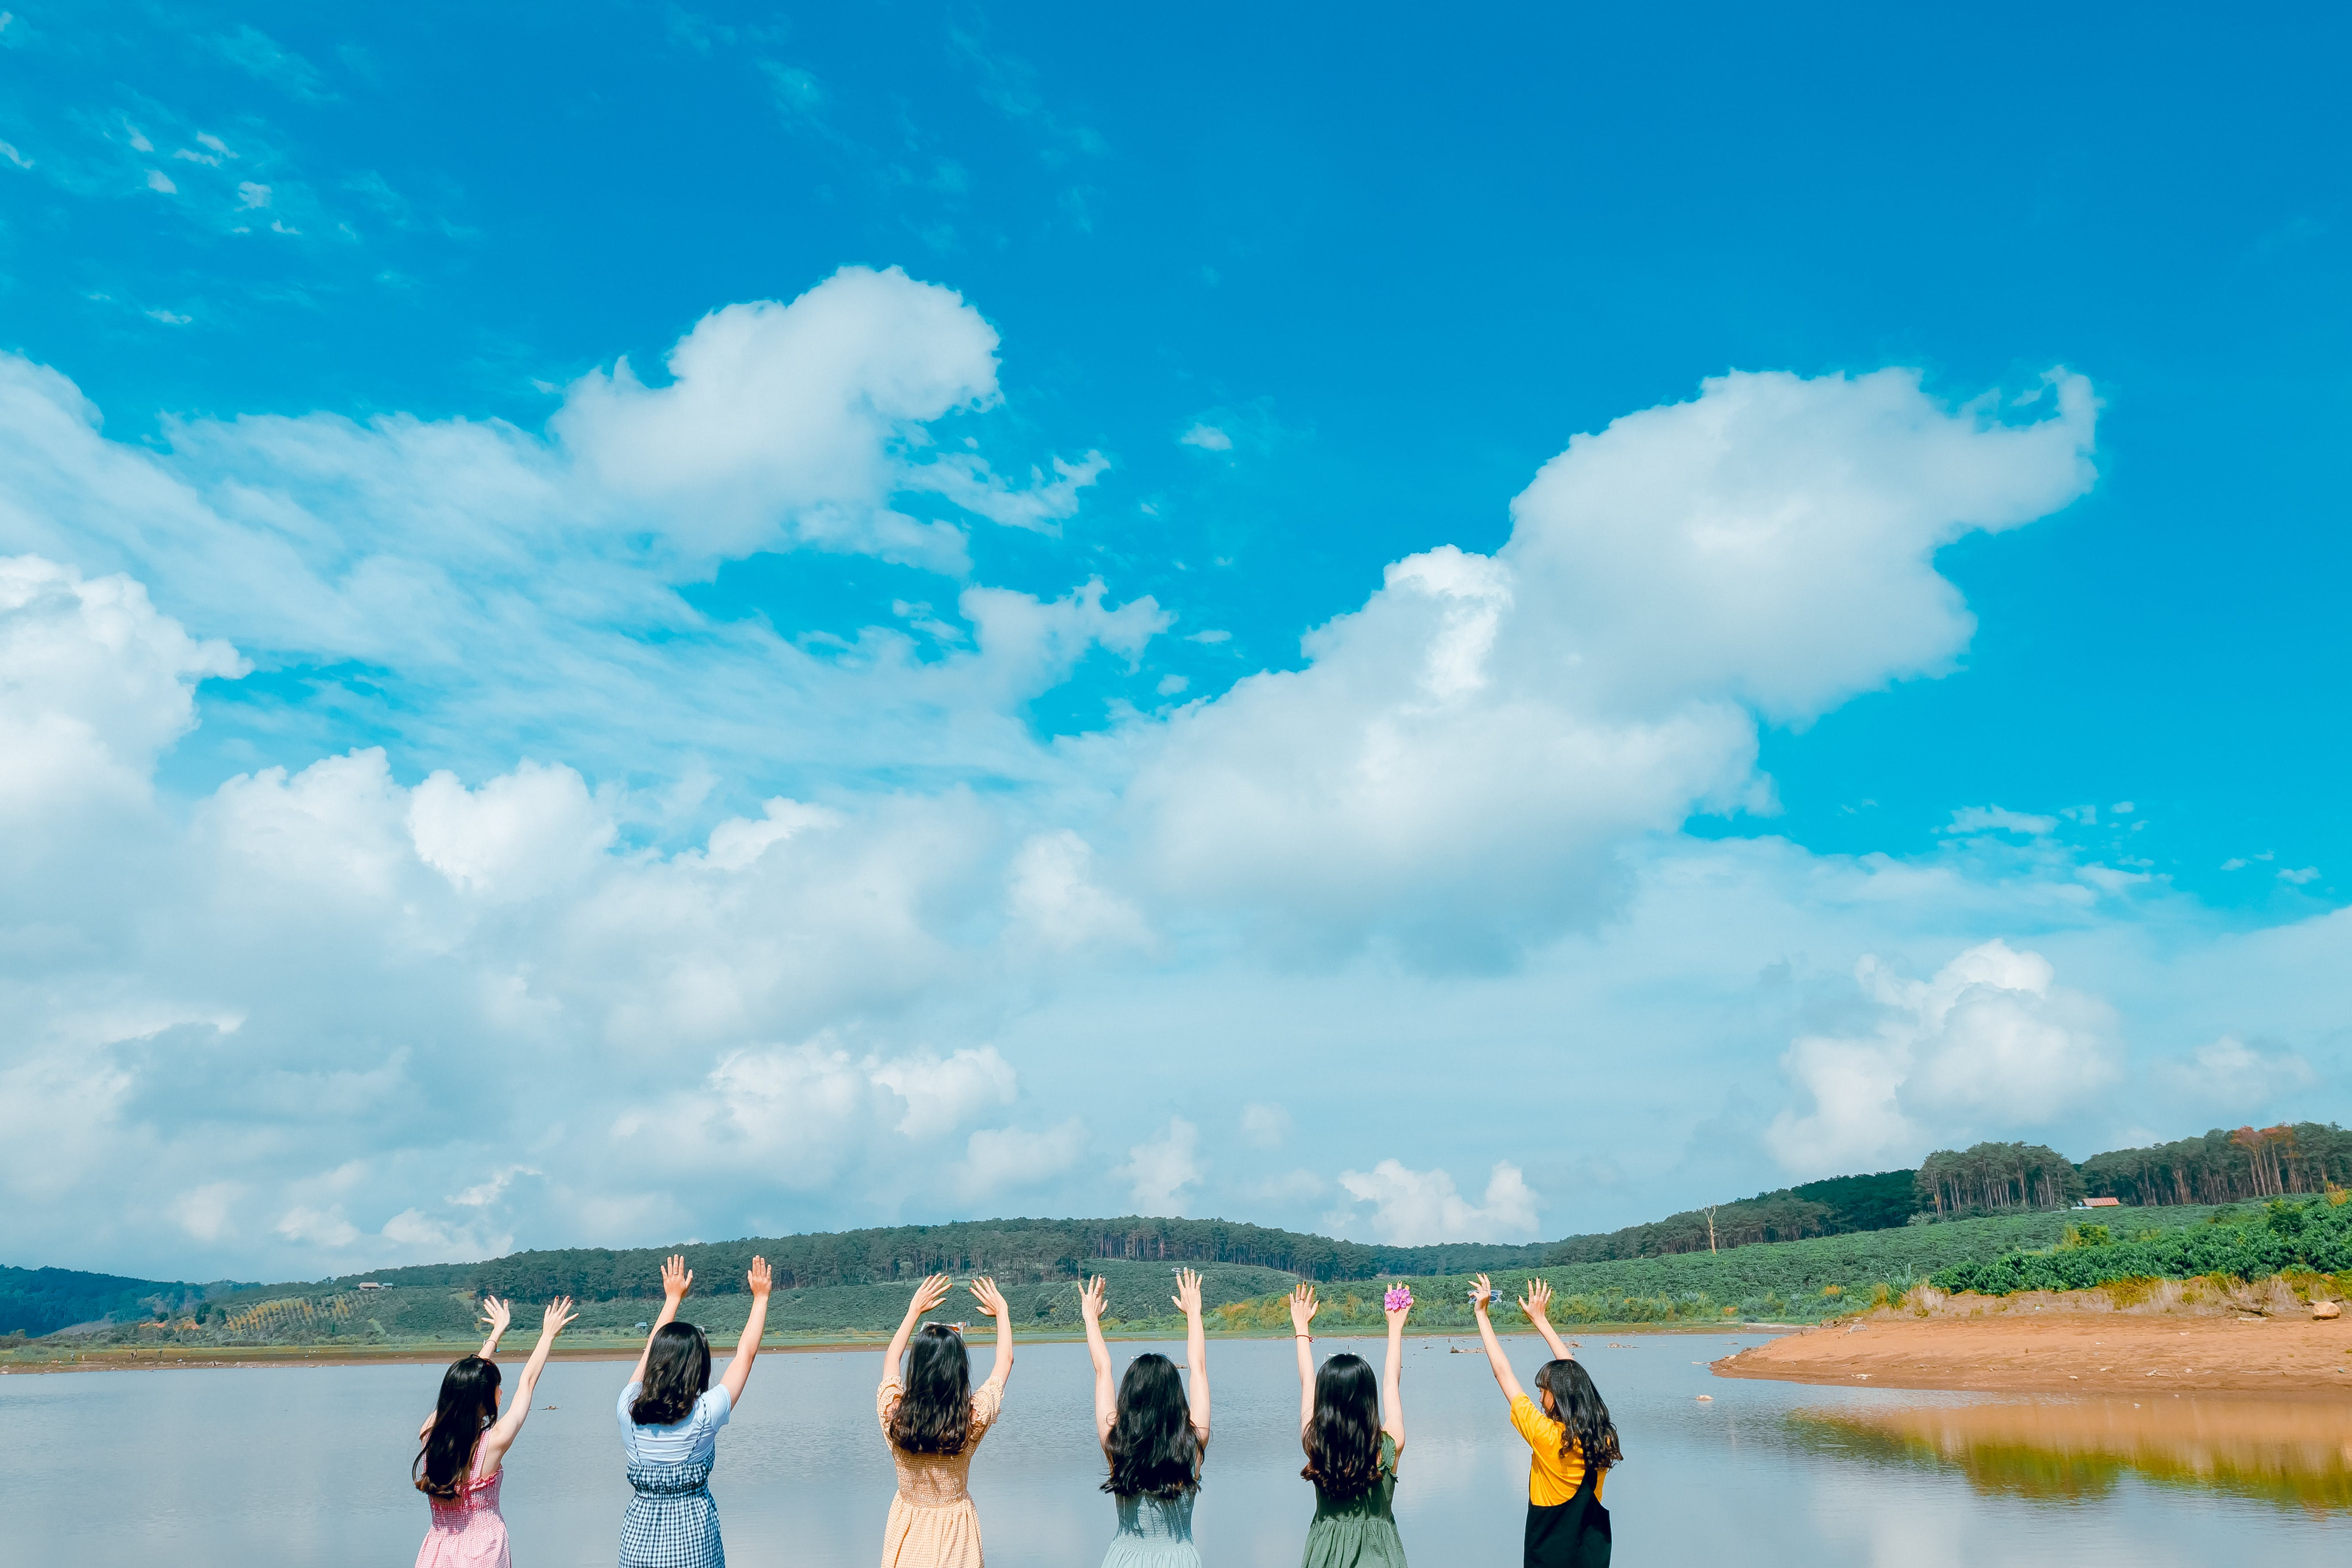 Group of Women Wearing Dress Raising Up Their Hands on Air Under Cloudy Sky